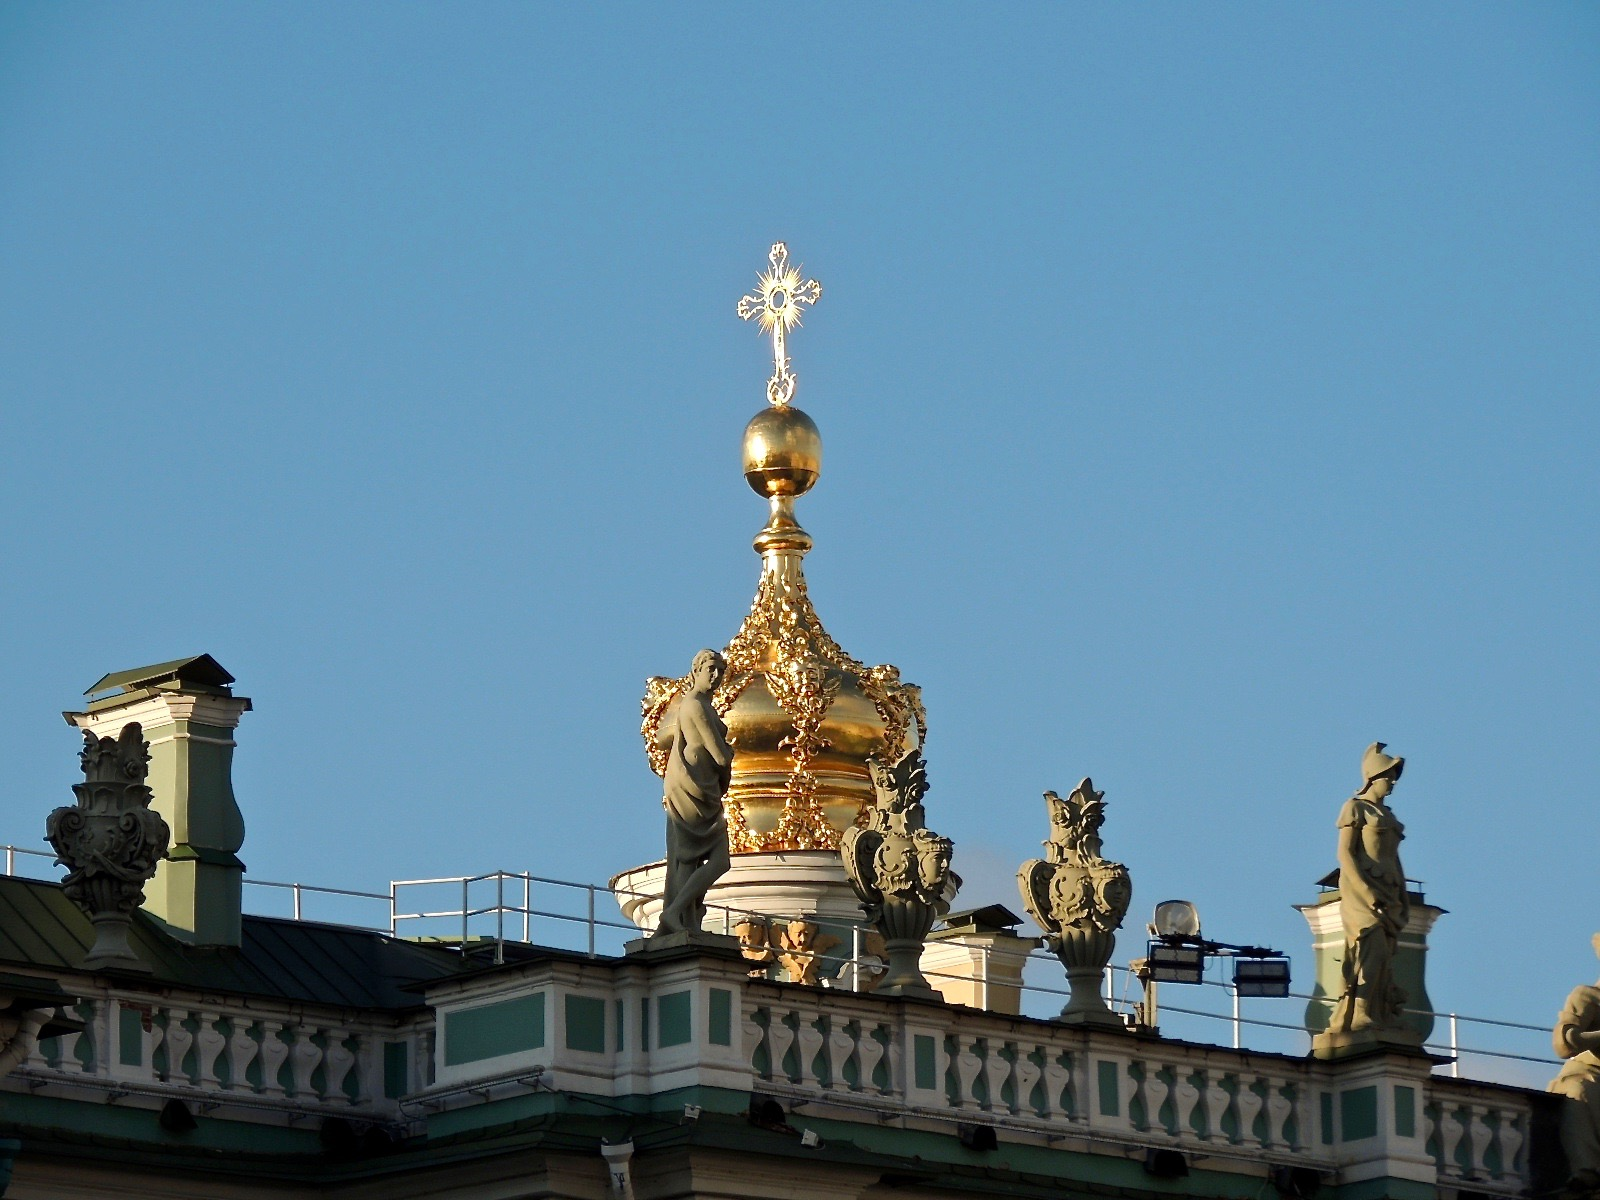 The golden cupola on top of the Winter Palace